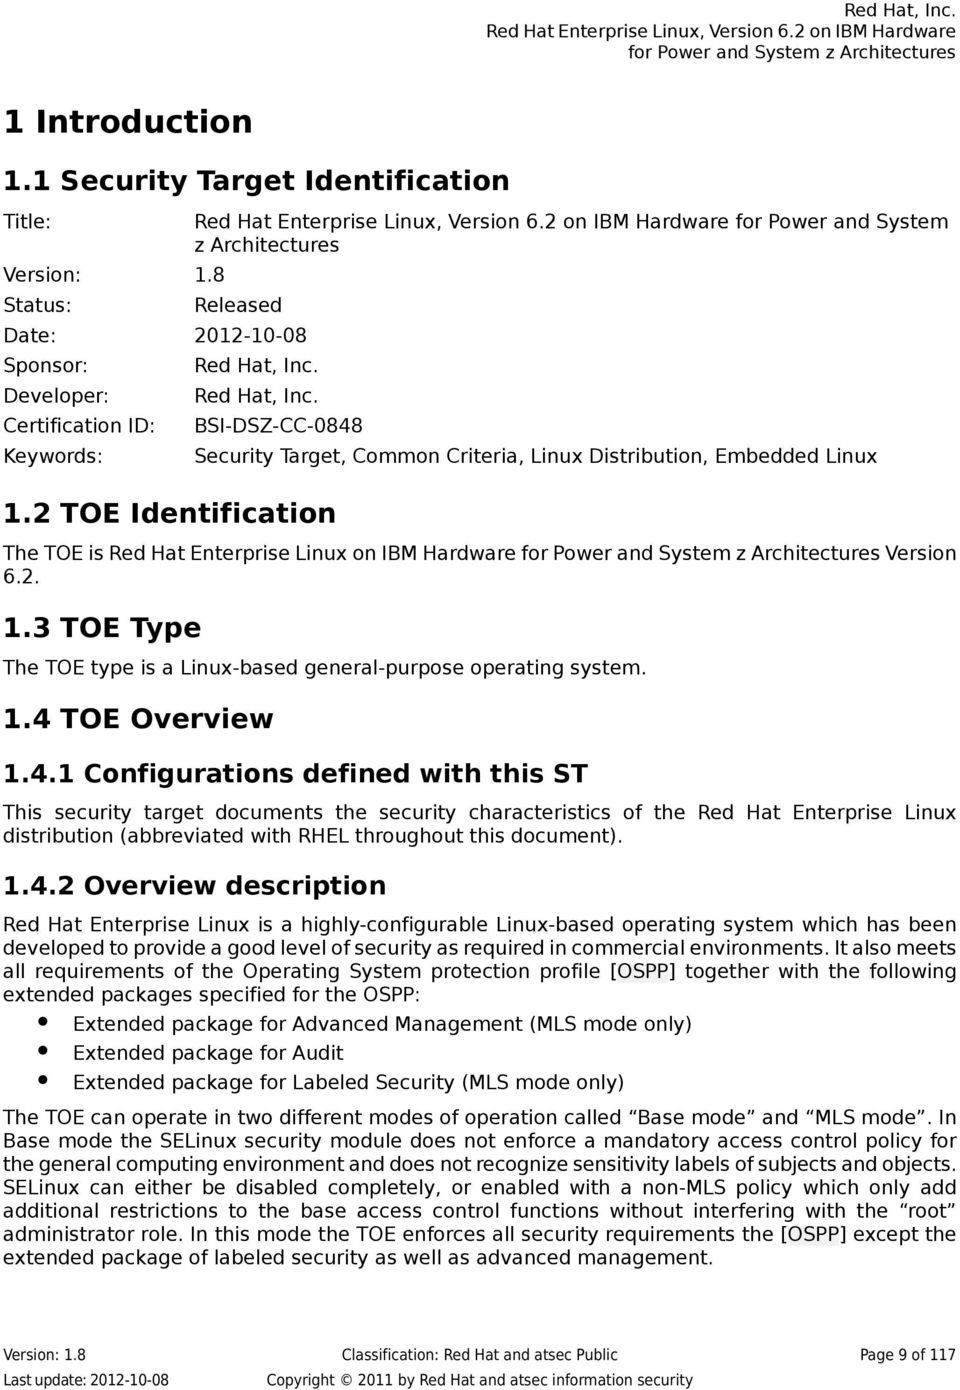 2 TOE Identification The TOE is Red Hat Enterprise Linux on IBM Hardware Version 6.2. 1.3 TOE Type The TOE type is a Linux-based general-purpose operating system. 1.4